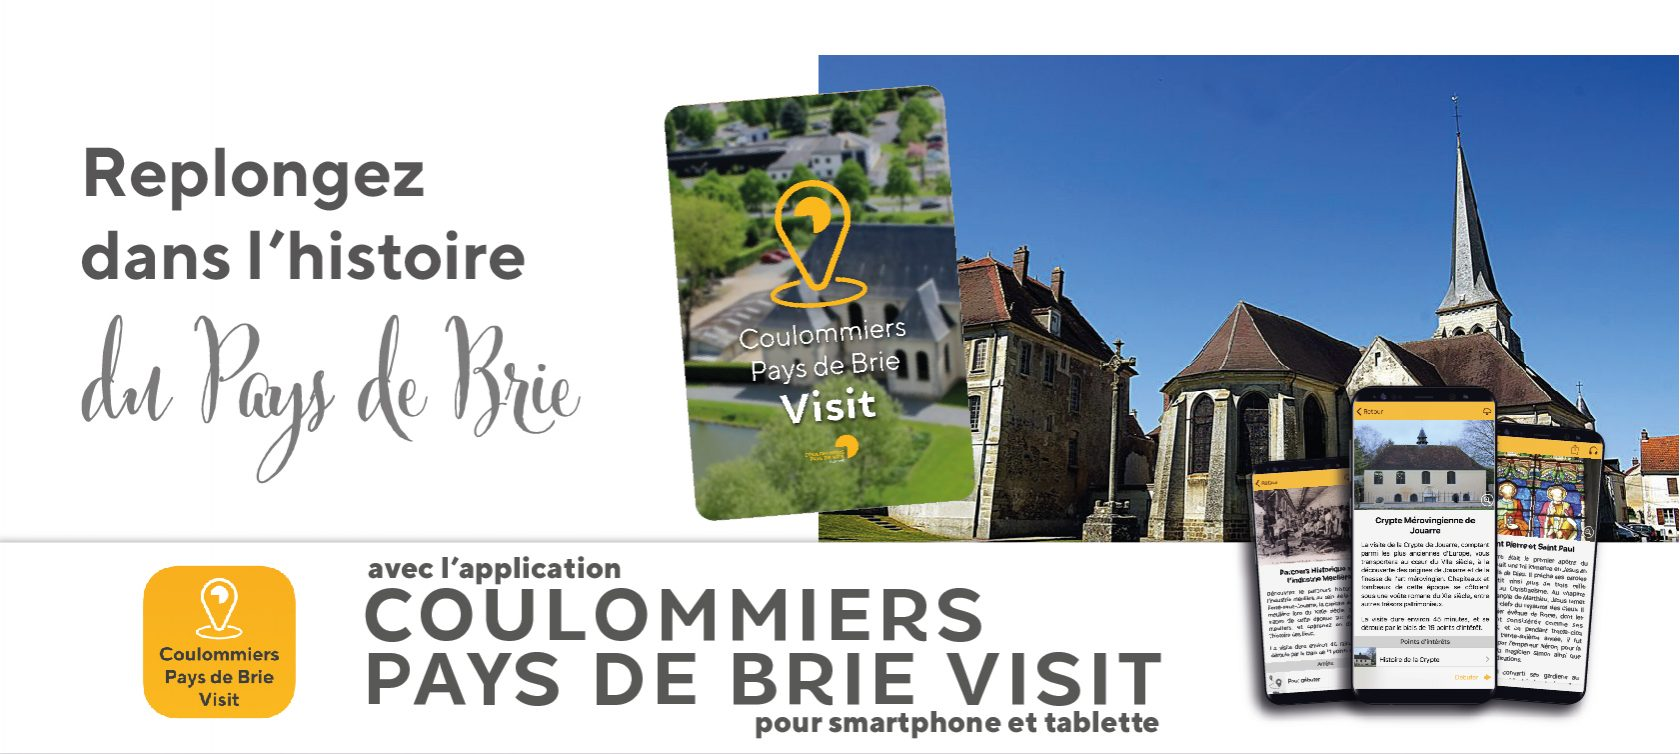 L'application Coulommiers Pays de Brie Visit'